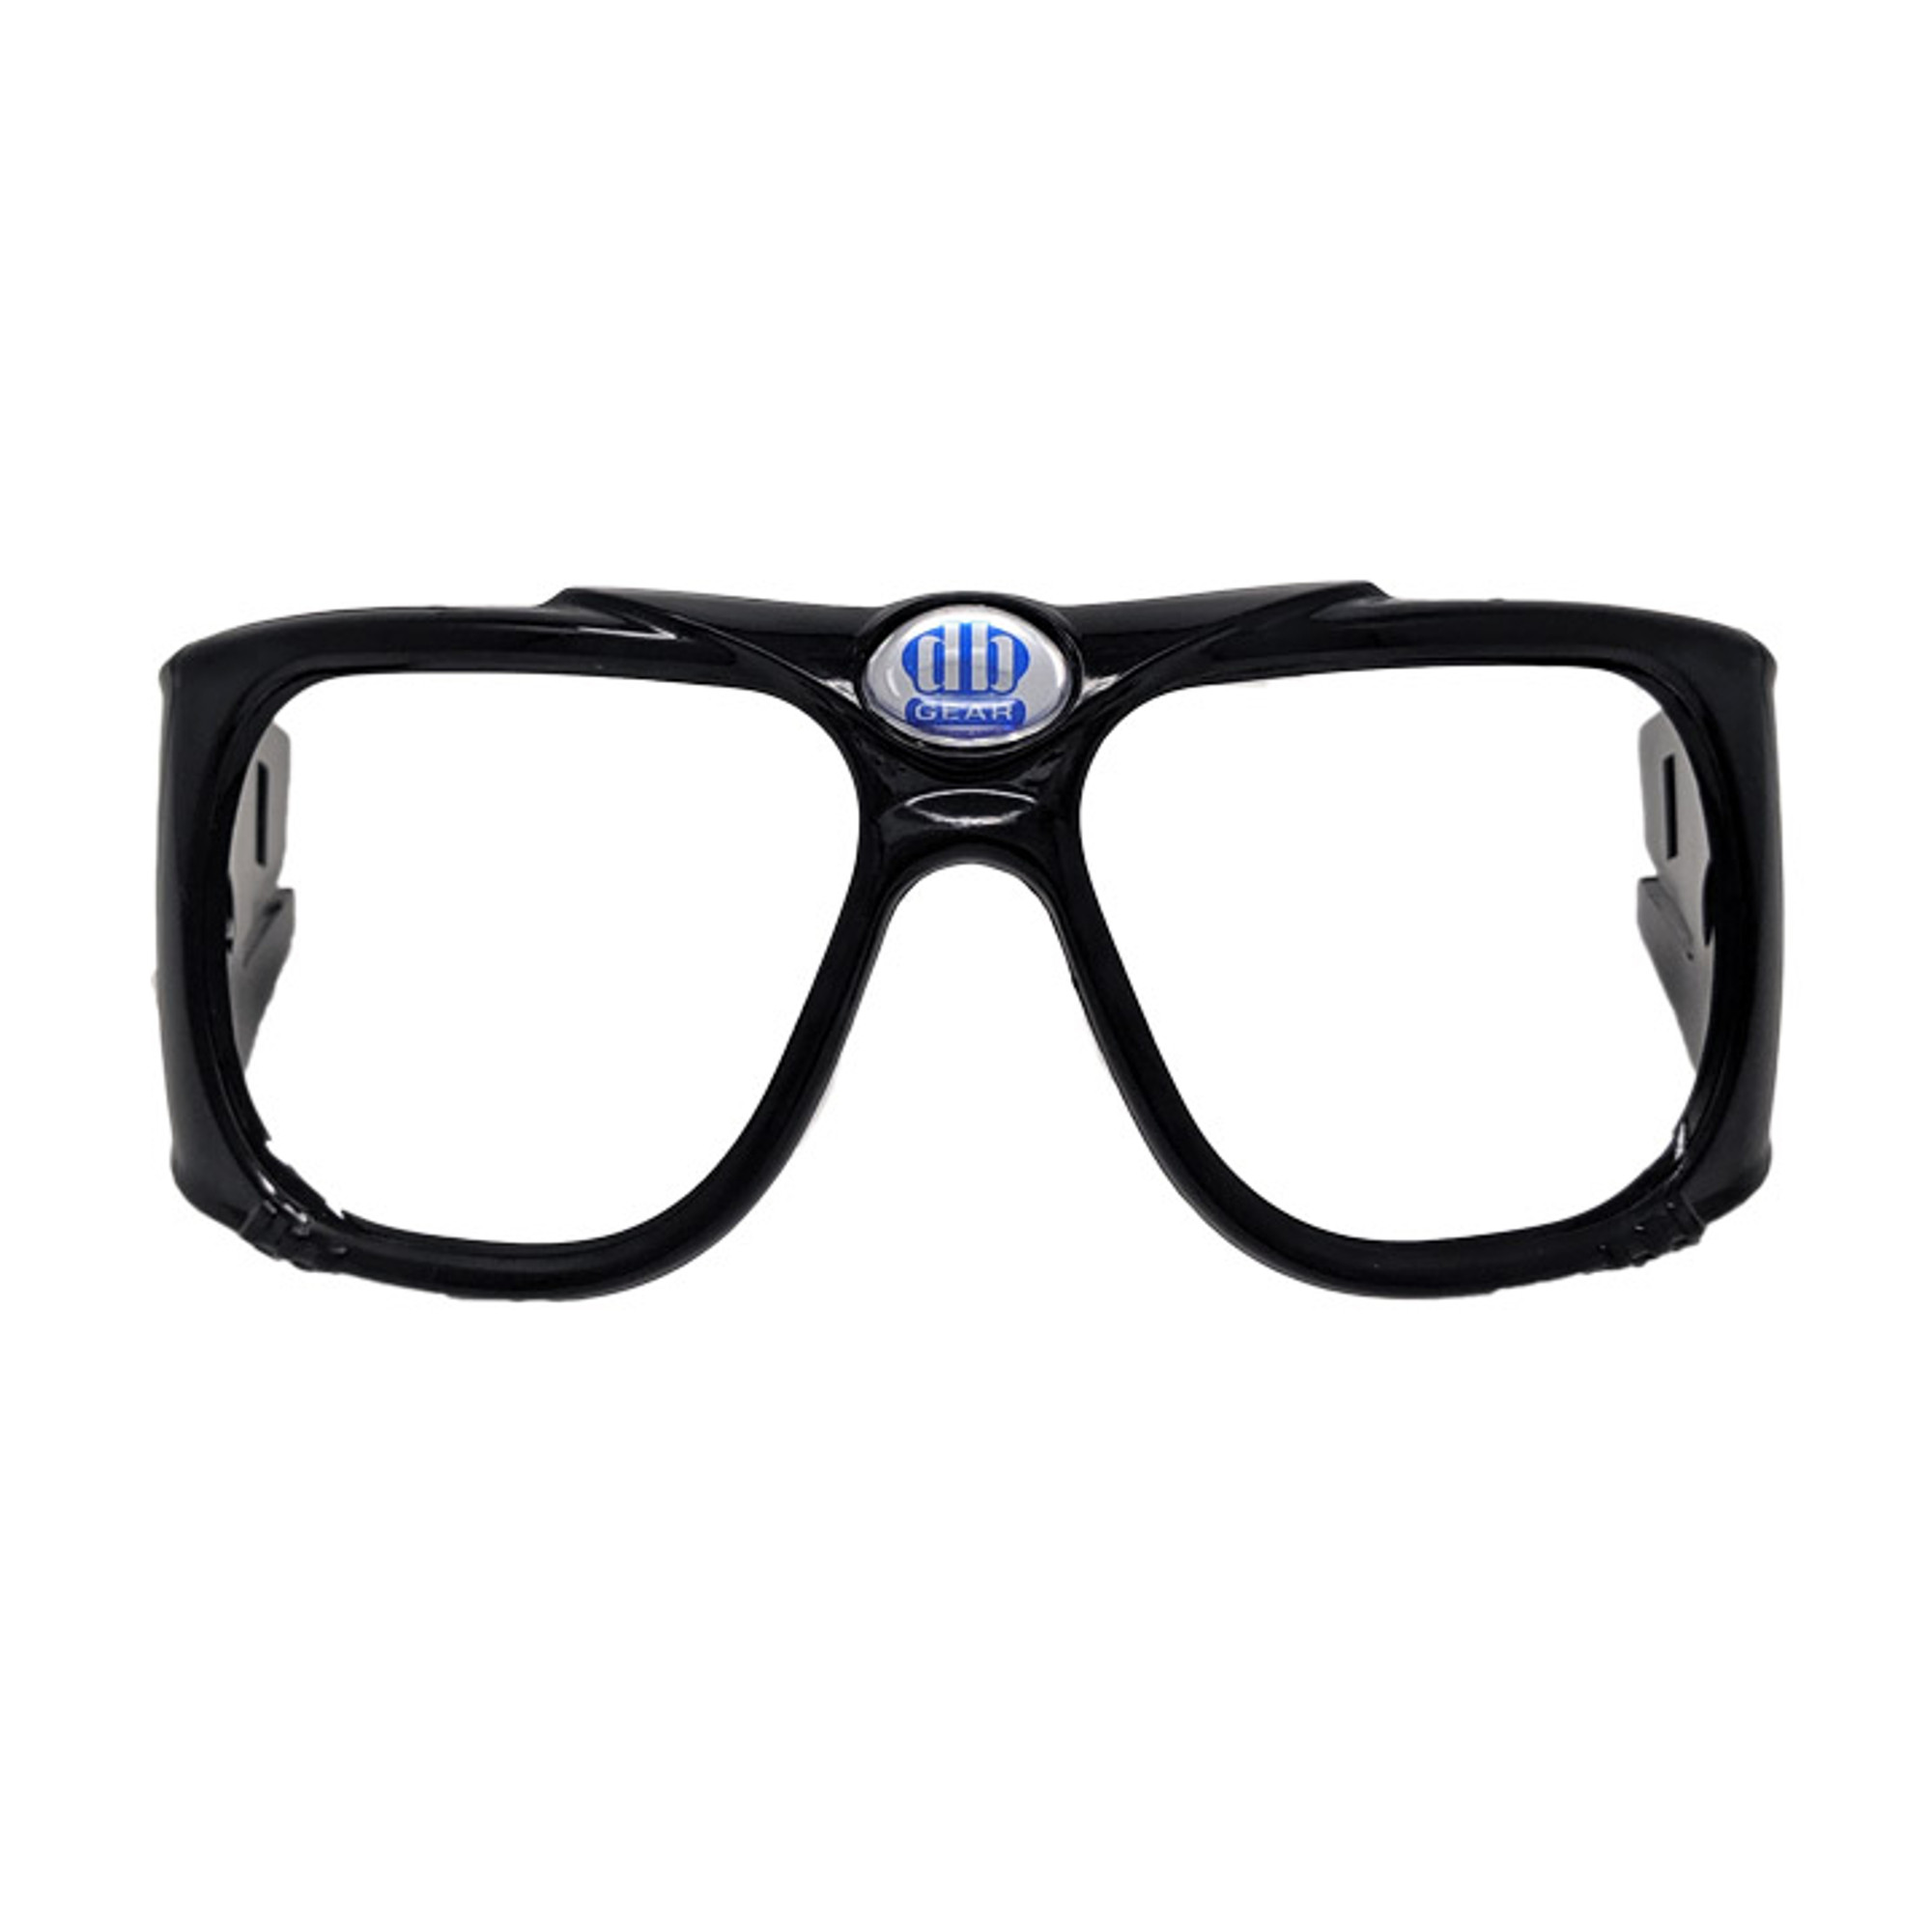 Full Face Mask Optical Lens Frame with Lenses